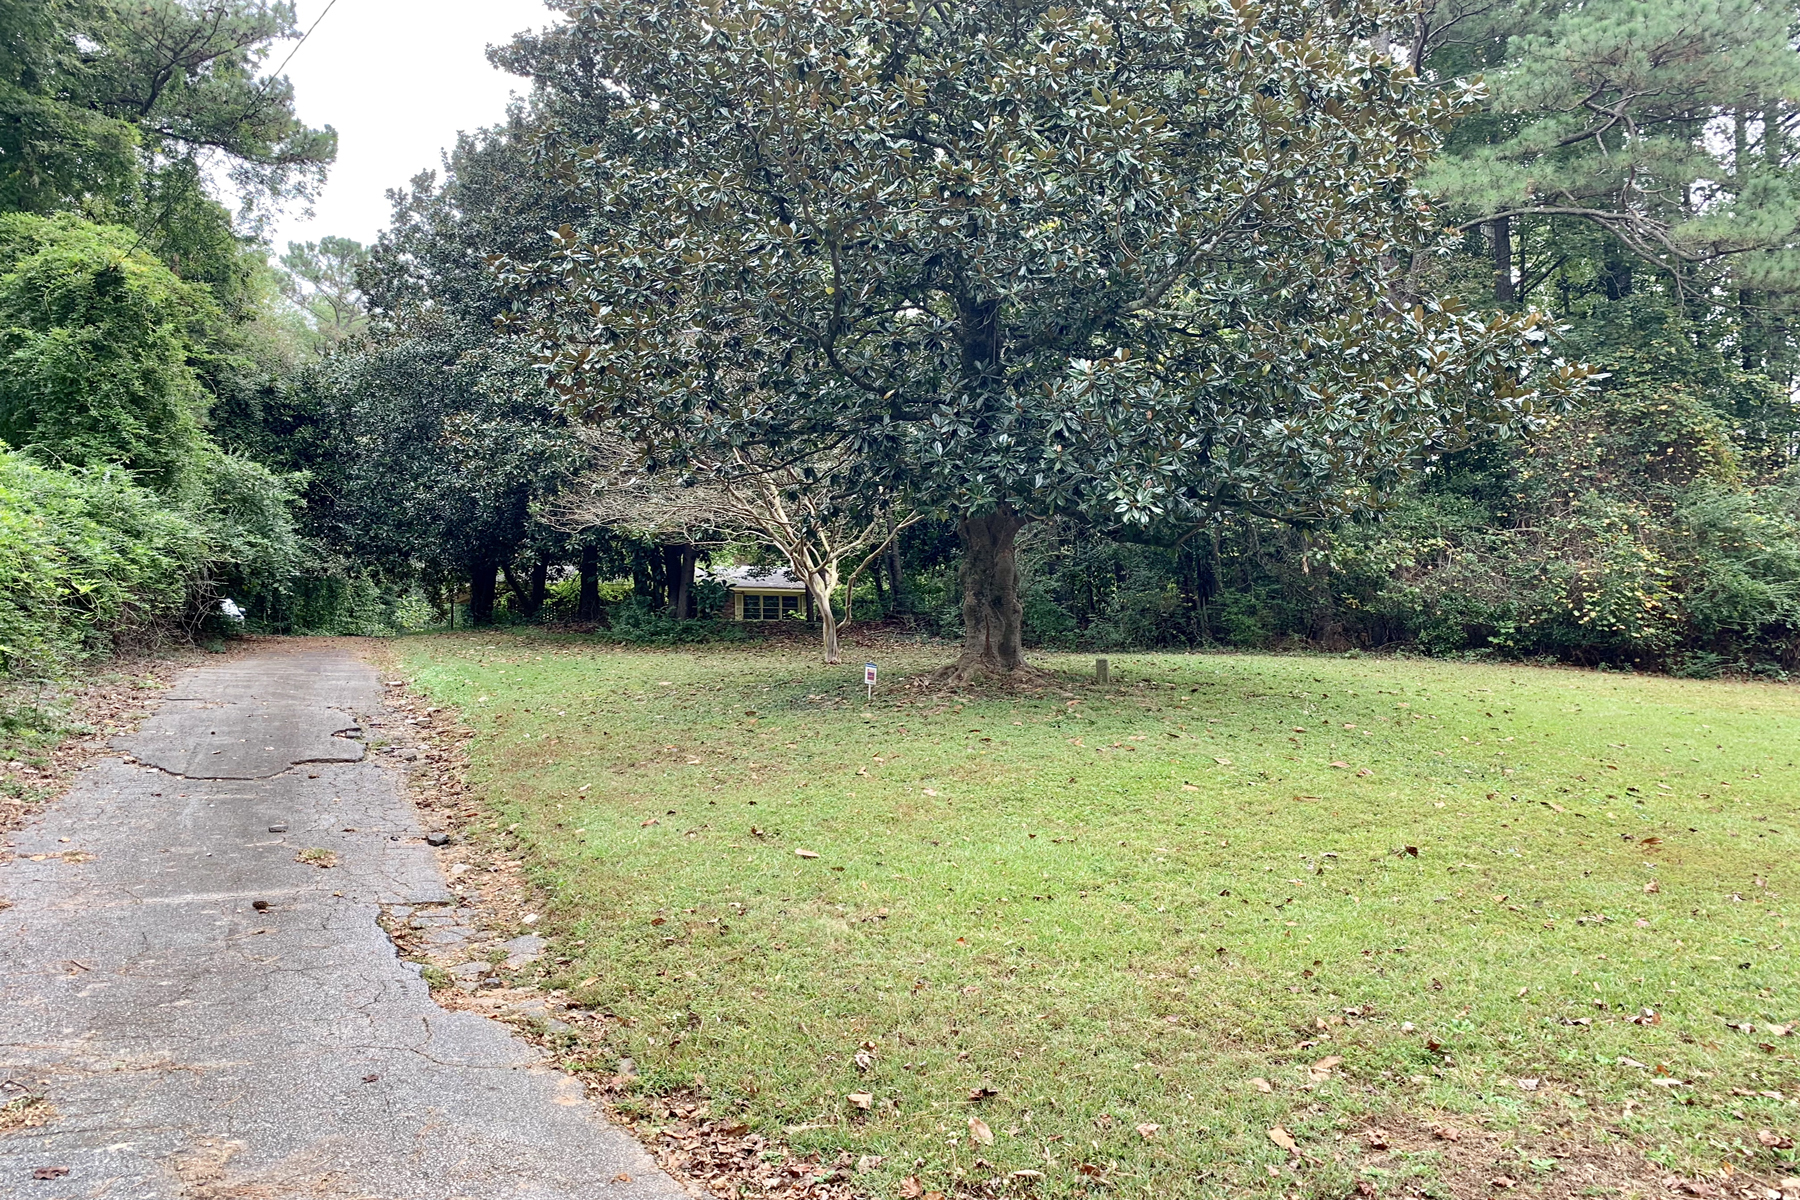 Single Family Home for Sale at Large 2.2+/- Acre Lot In The Heart Of Sandy Springs 5757 Long Island Drive NW Atlanta, Georgia 30327 United States